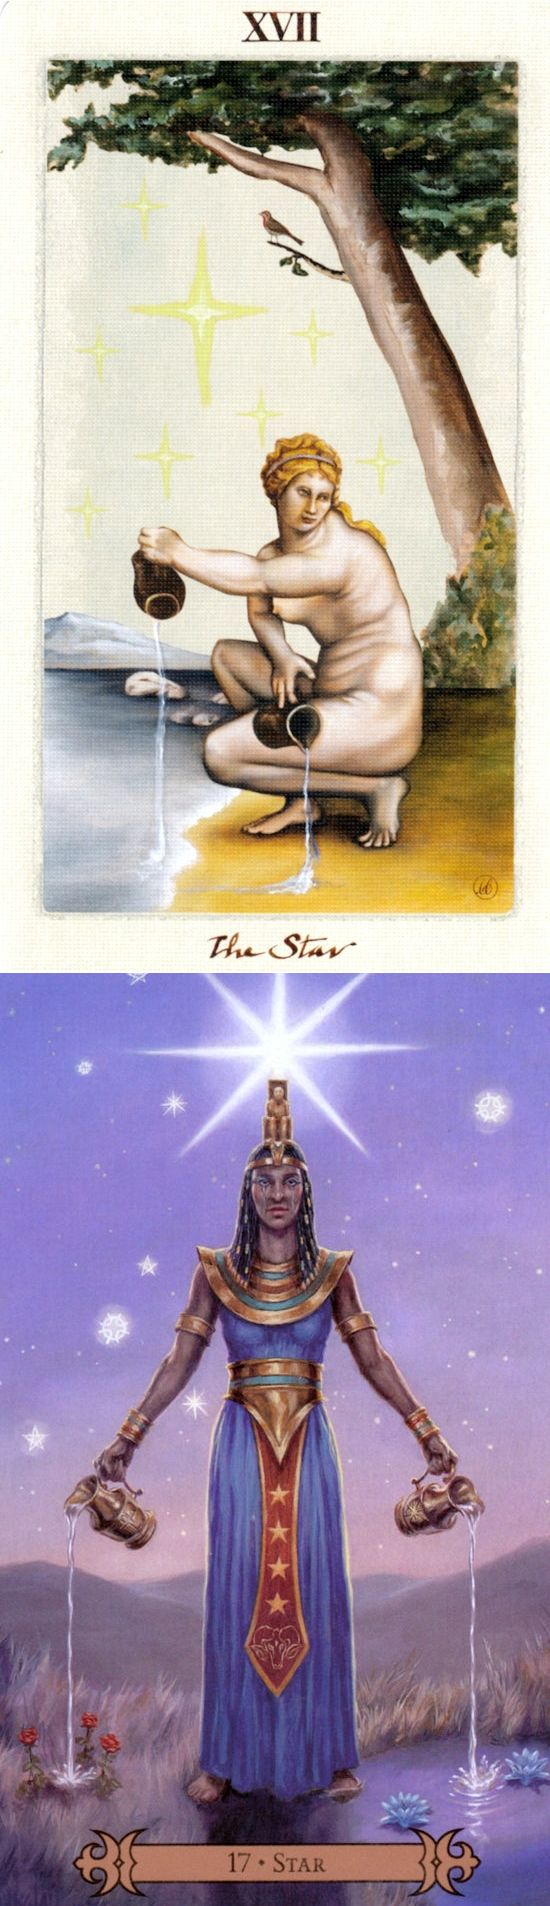 THE STAR: hope and faithlessness (reverse). Pagan Otherworlds Tarot deck and Spellcasters Tarot deck: tarot reading free online real, online tarot vs one card tarot reading. The best psychic readings questions and guessing games for adults.